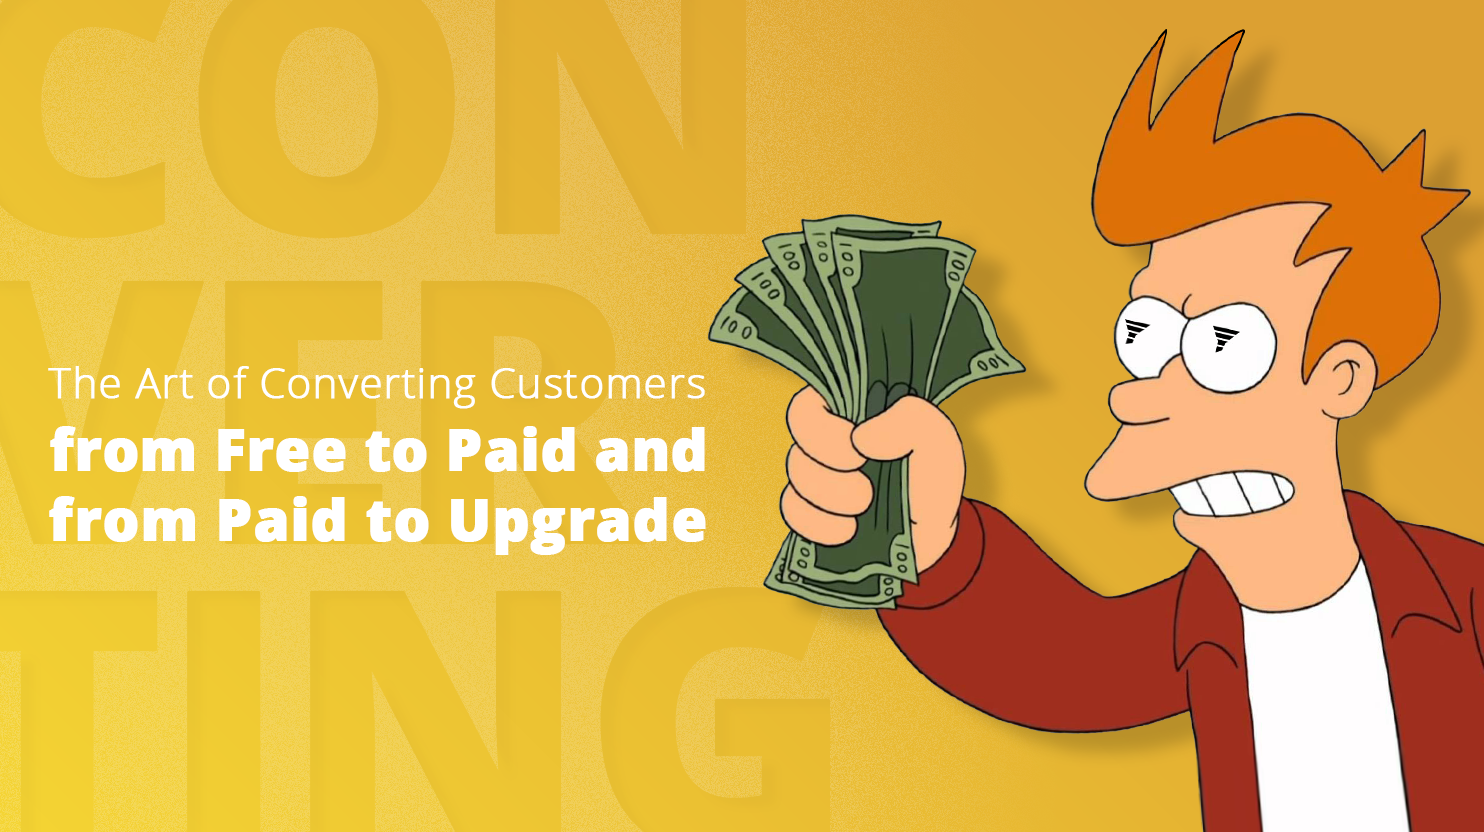 The Art of Converting Customers from Free to Paid and from Paid to Upgrade